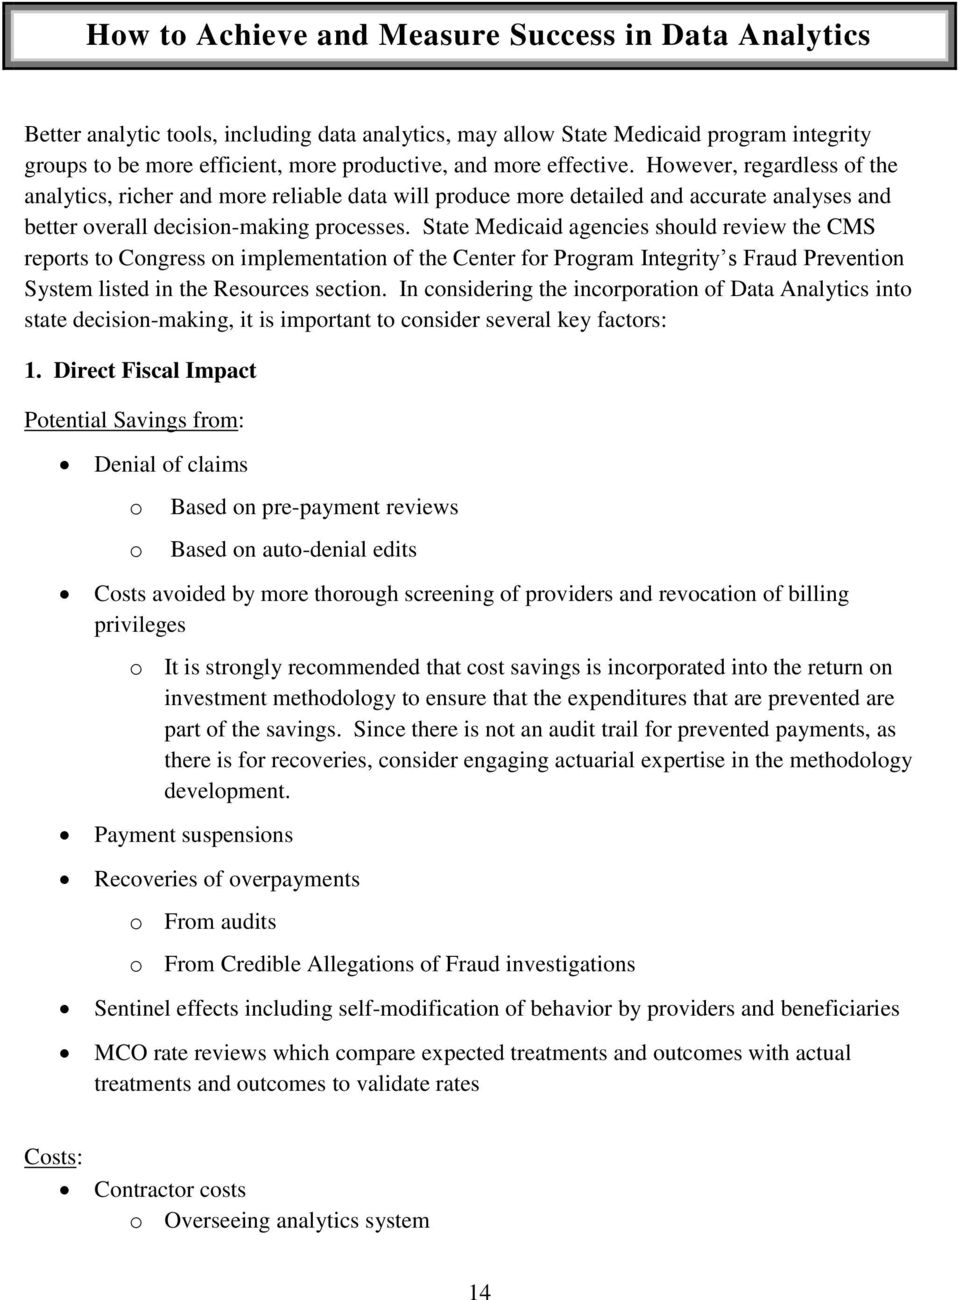 State Medicaid agencies should review the CMS reports to Congress on implementation of the Center for Program Integrity s Fraud Prevention System listed in the Resources section.